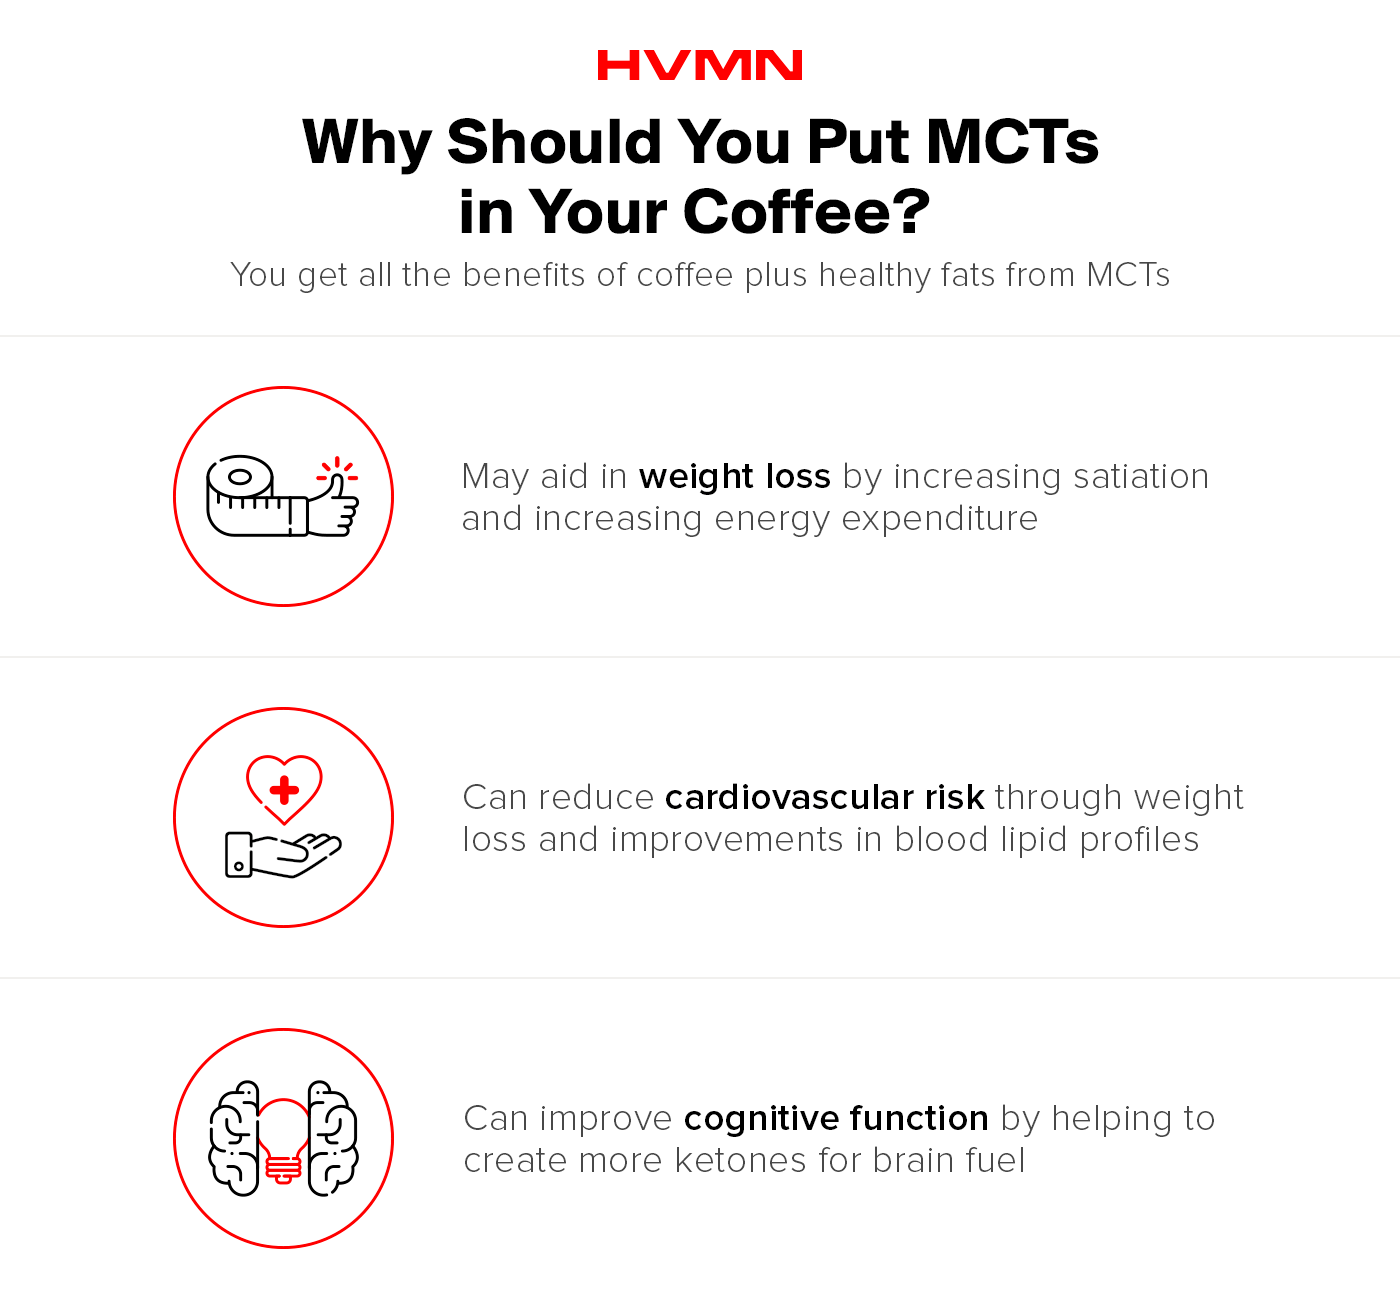 MCTs in coffee can help increase weight loss by increasing energy expenditure, can reduce cardiovascular risk, and can improve cognition.